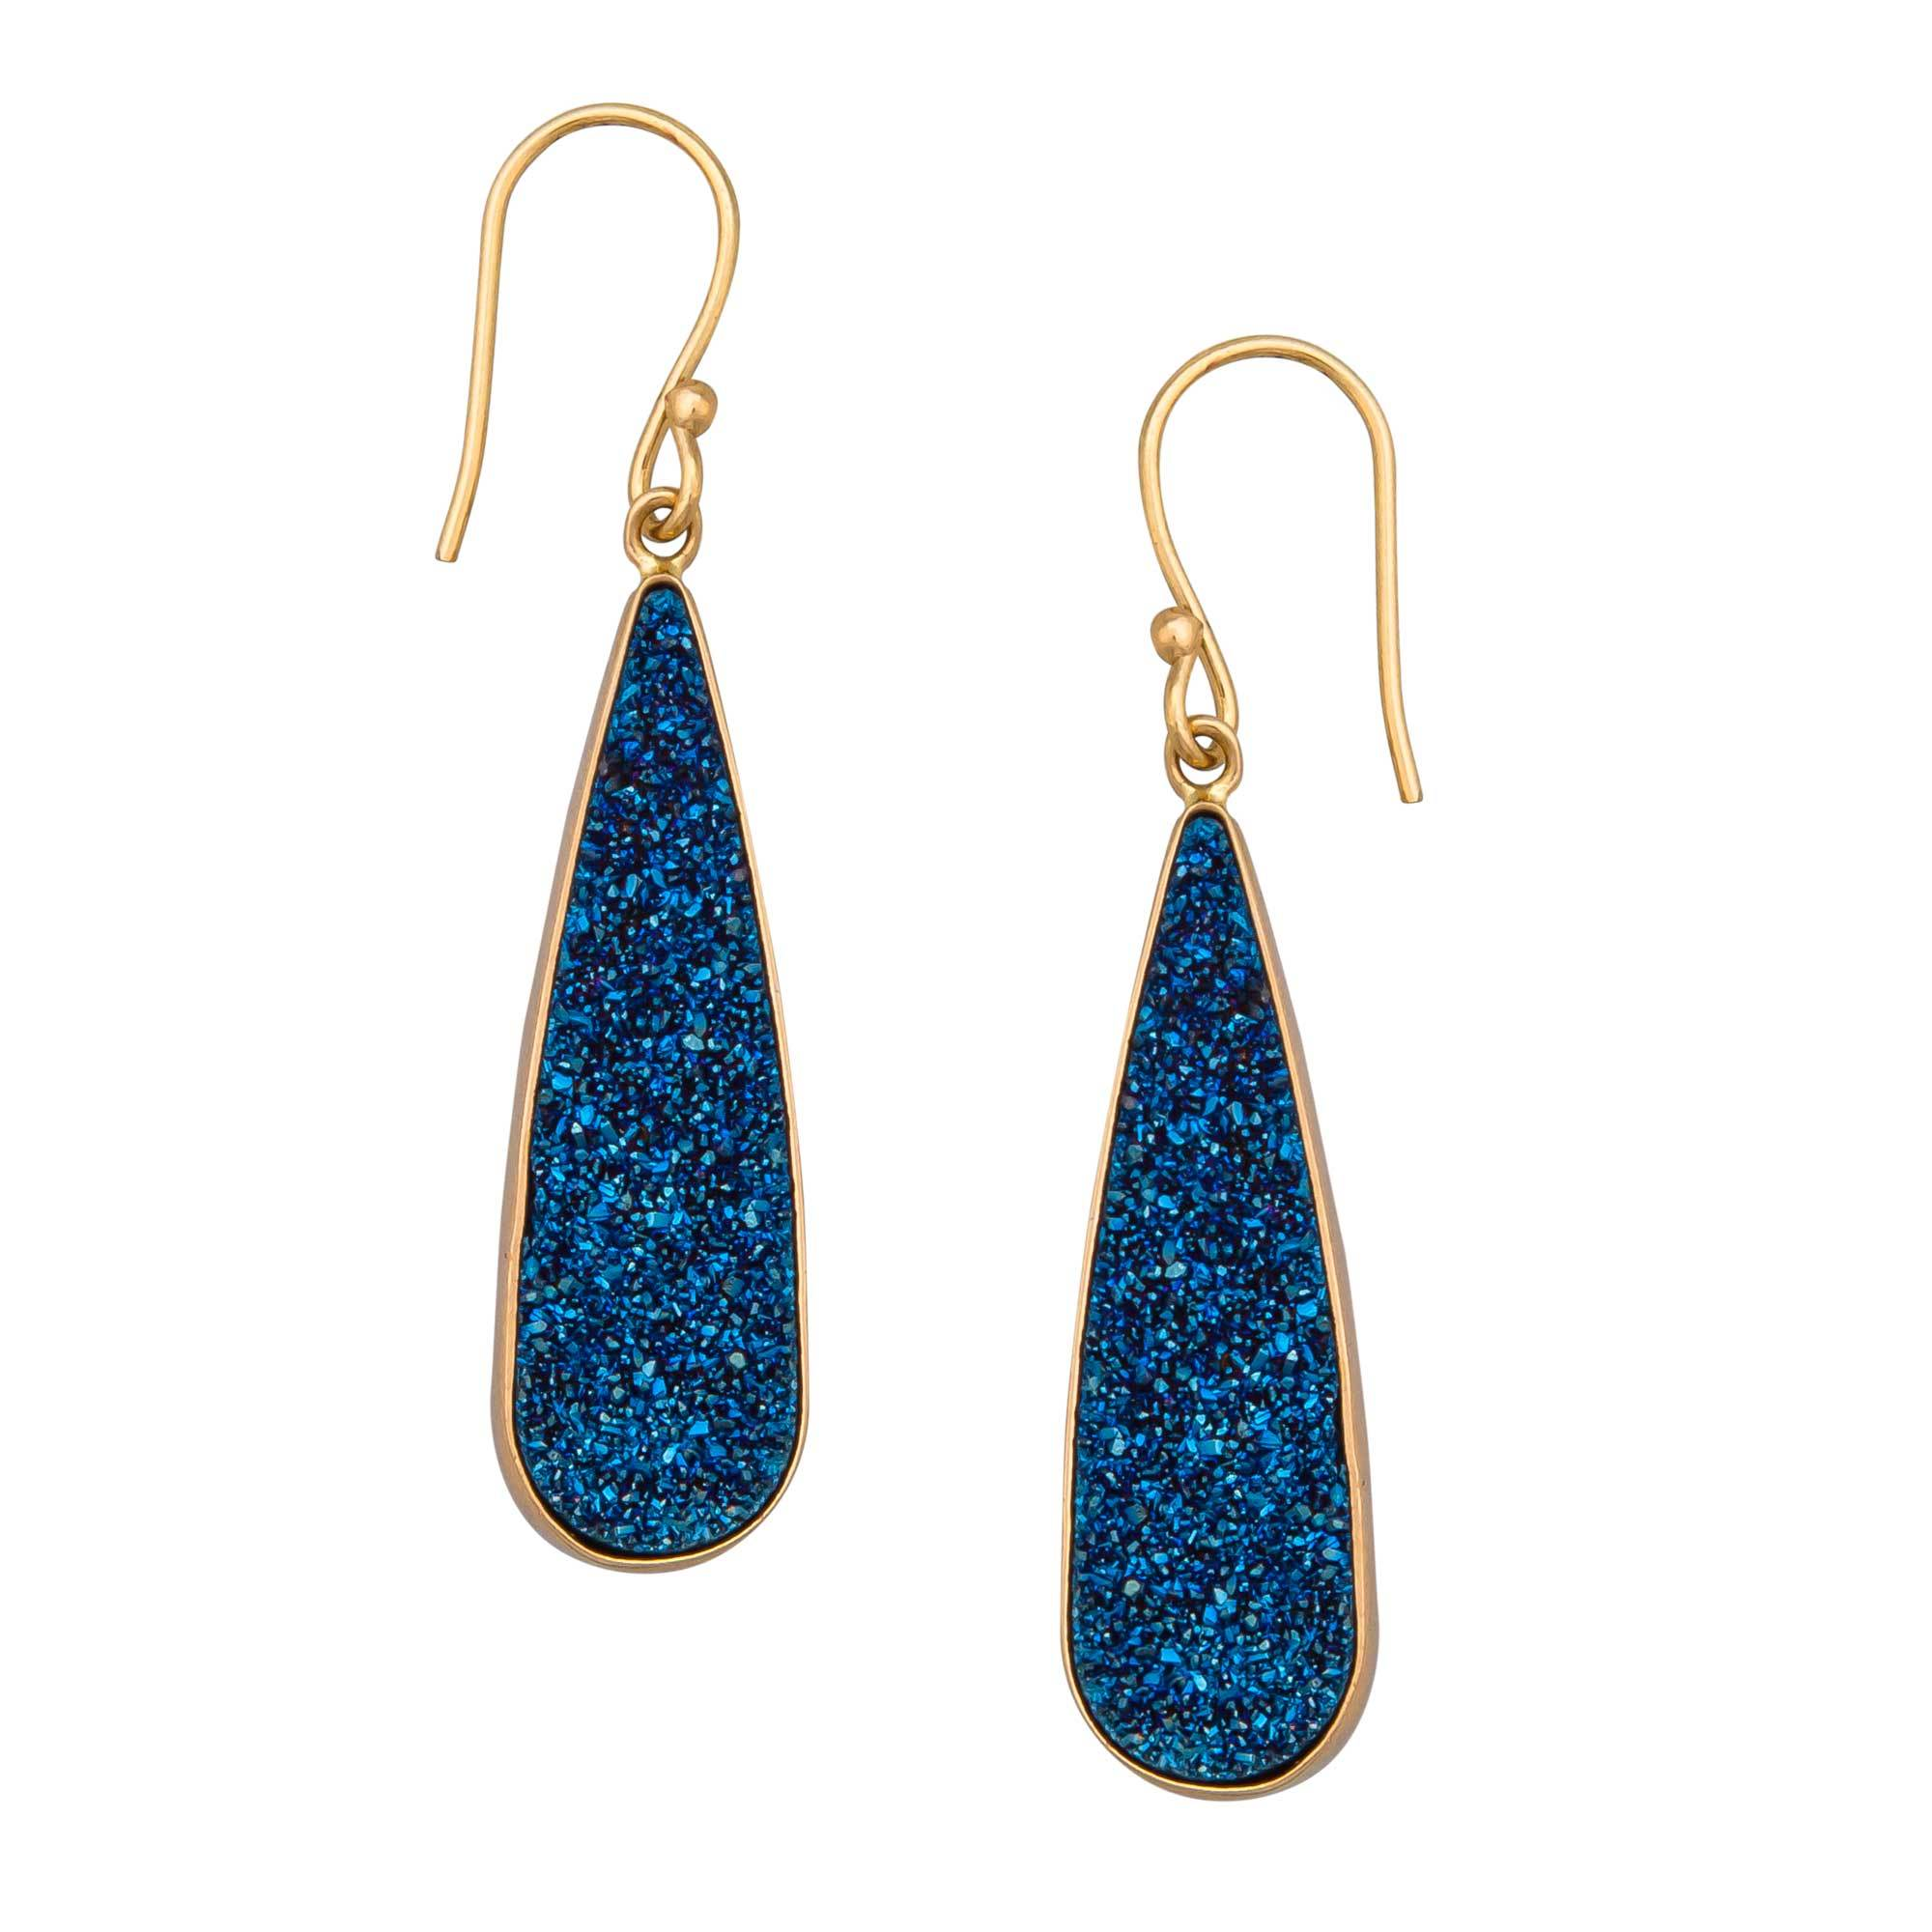 Alchemia Blue Druse Teardrop Earrings | Charles Albert Jewelry